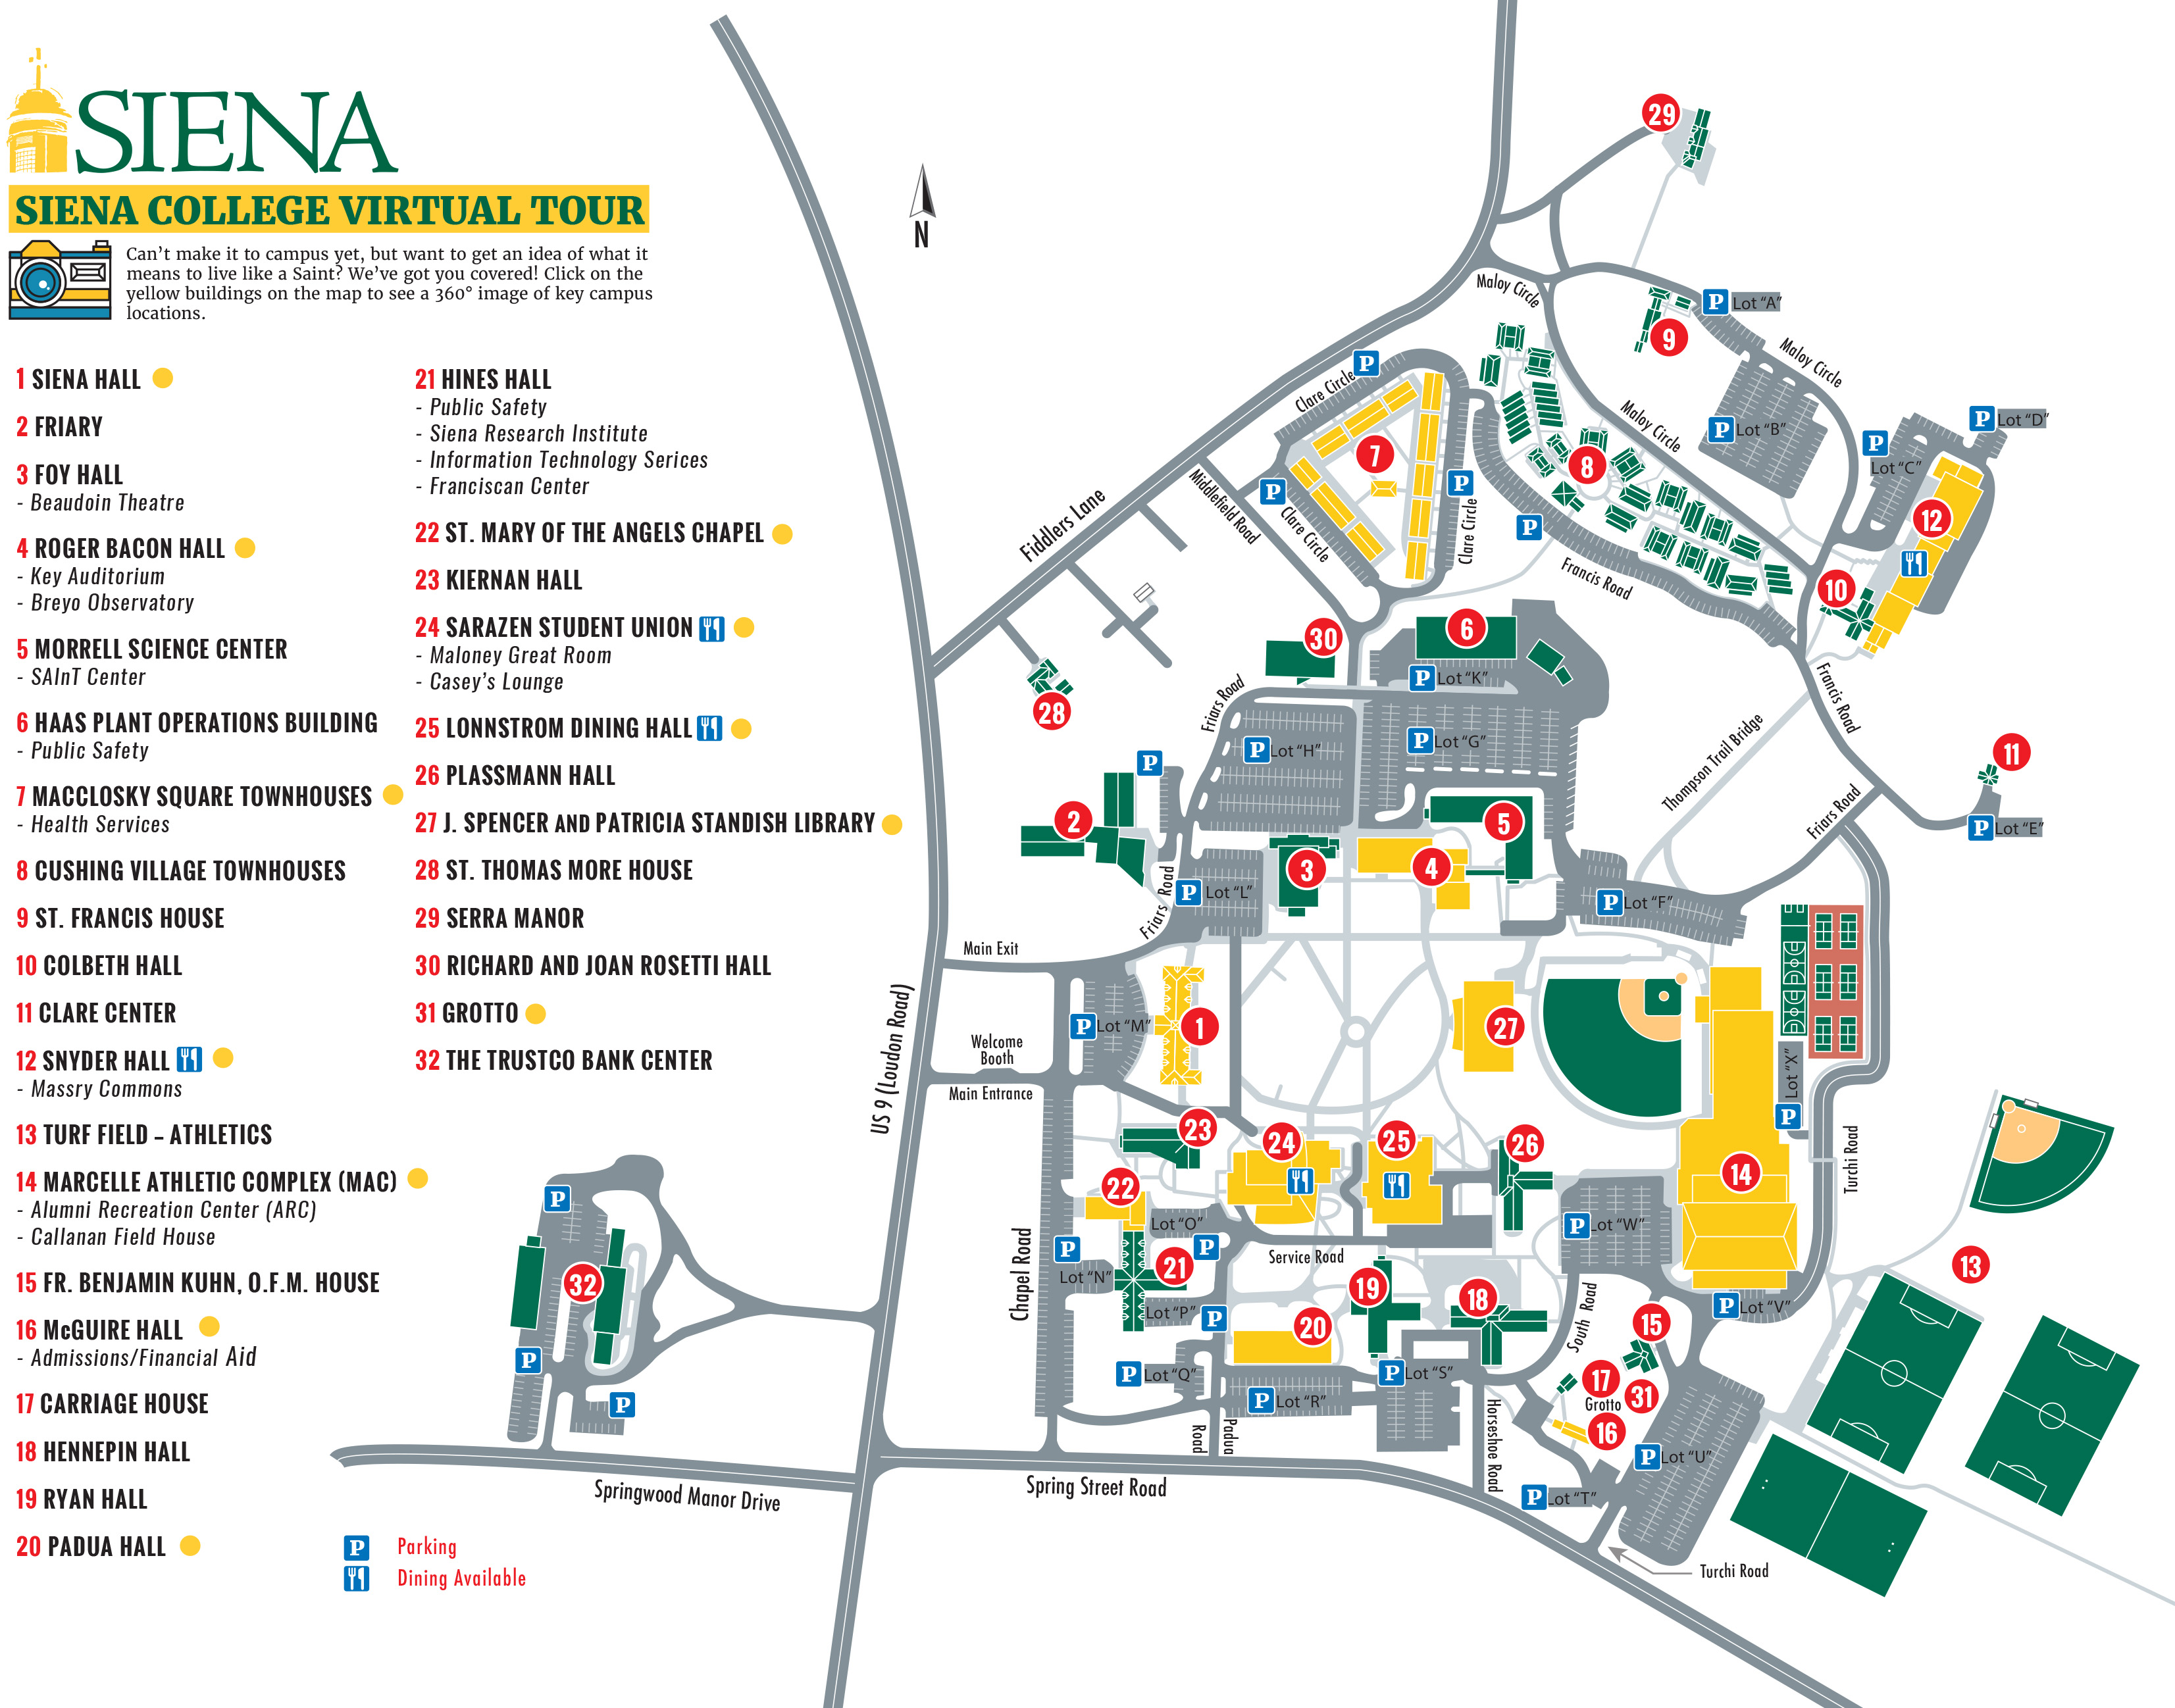 siena college campus map Virtual Campus Map Siena College siena college campus map